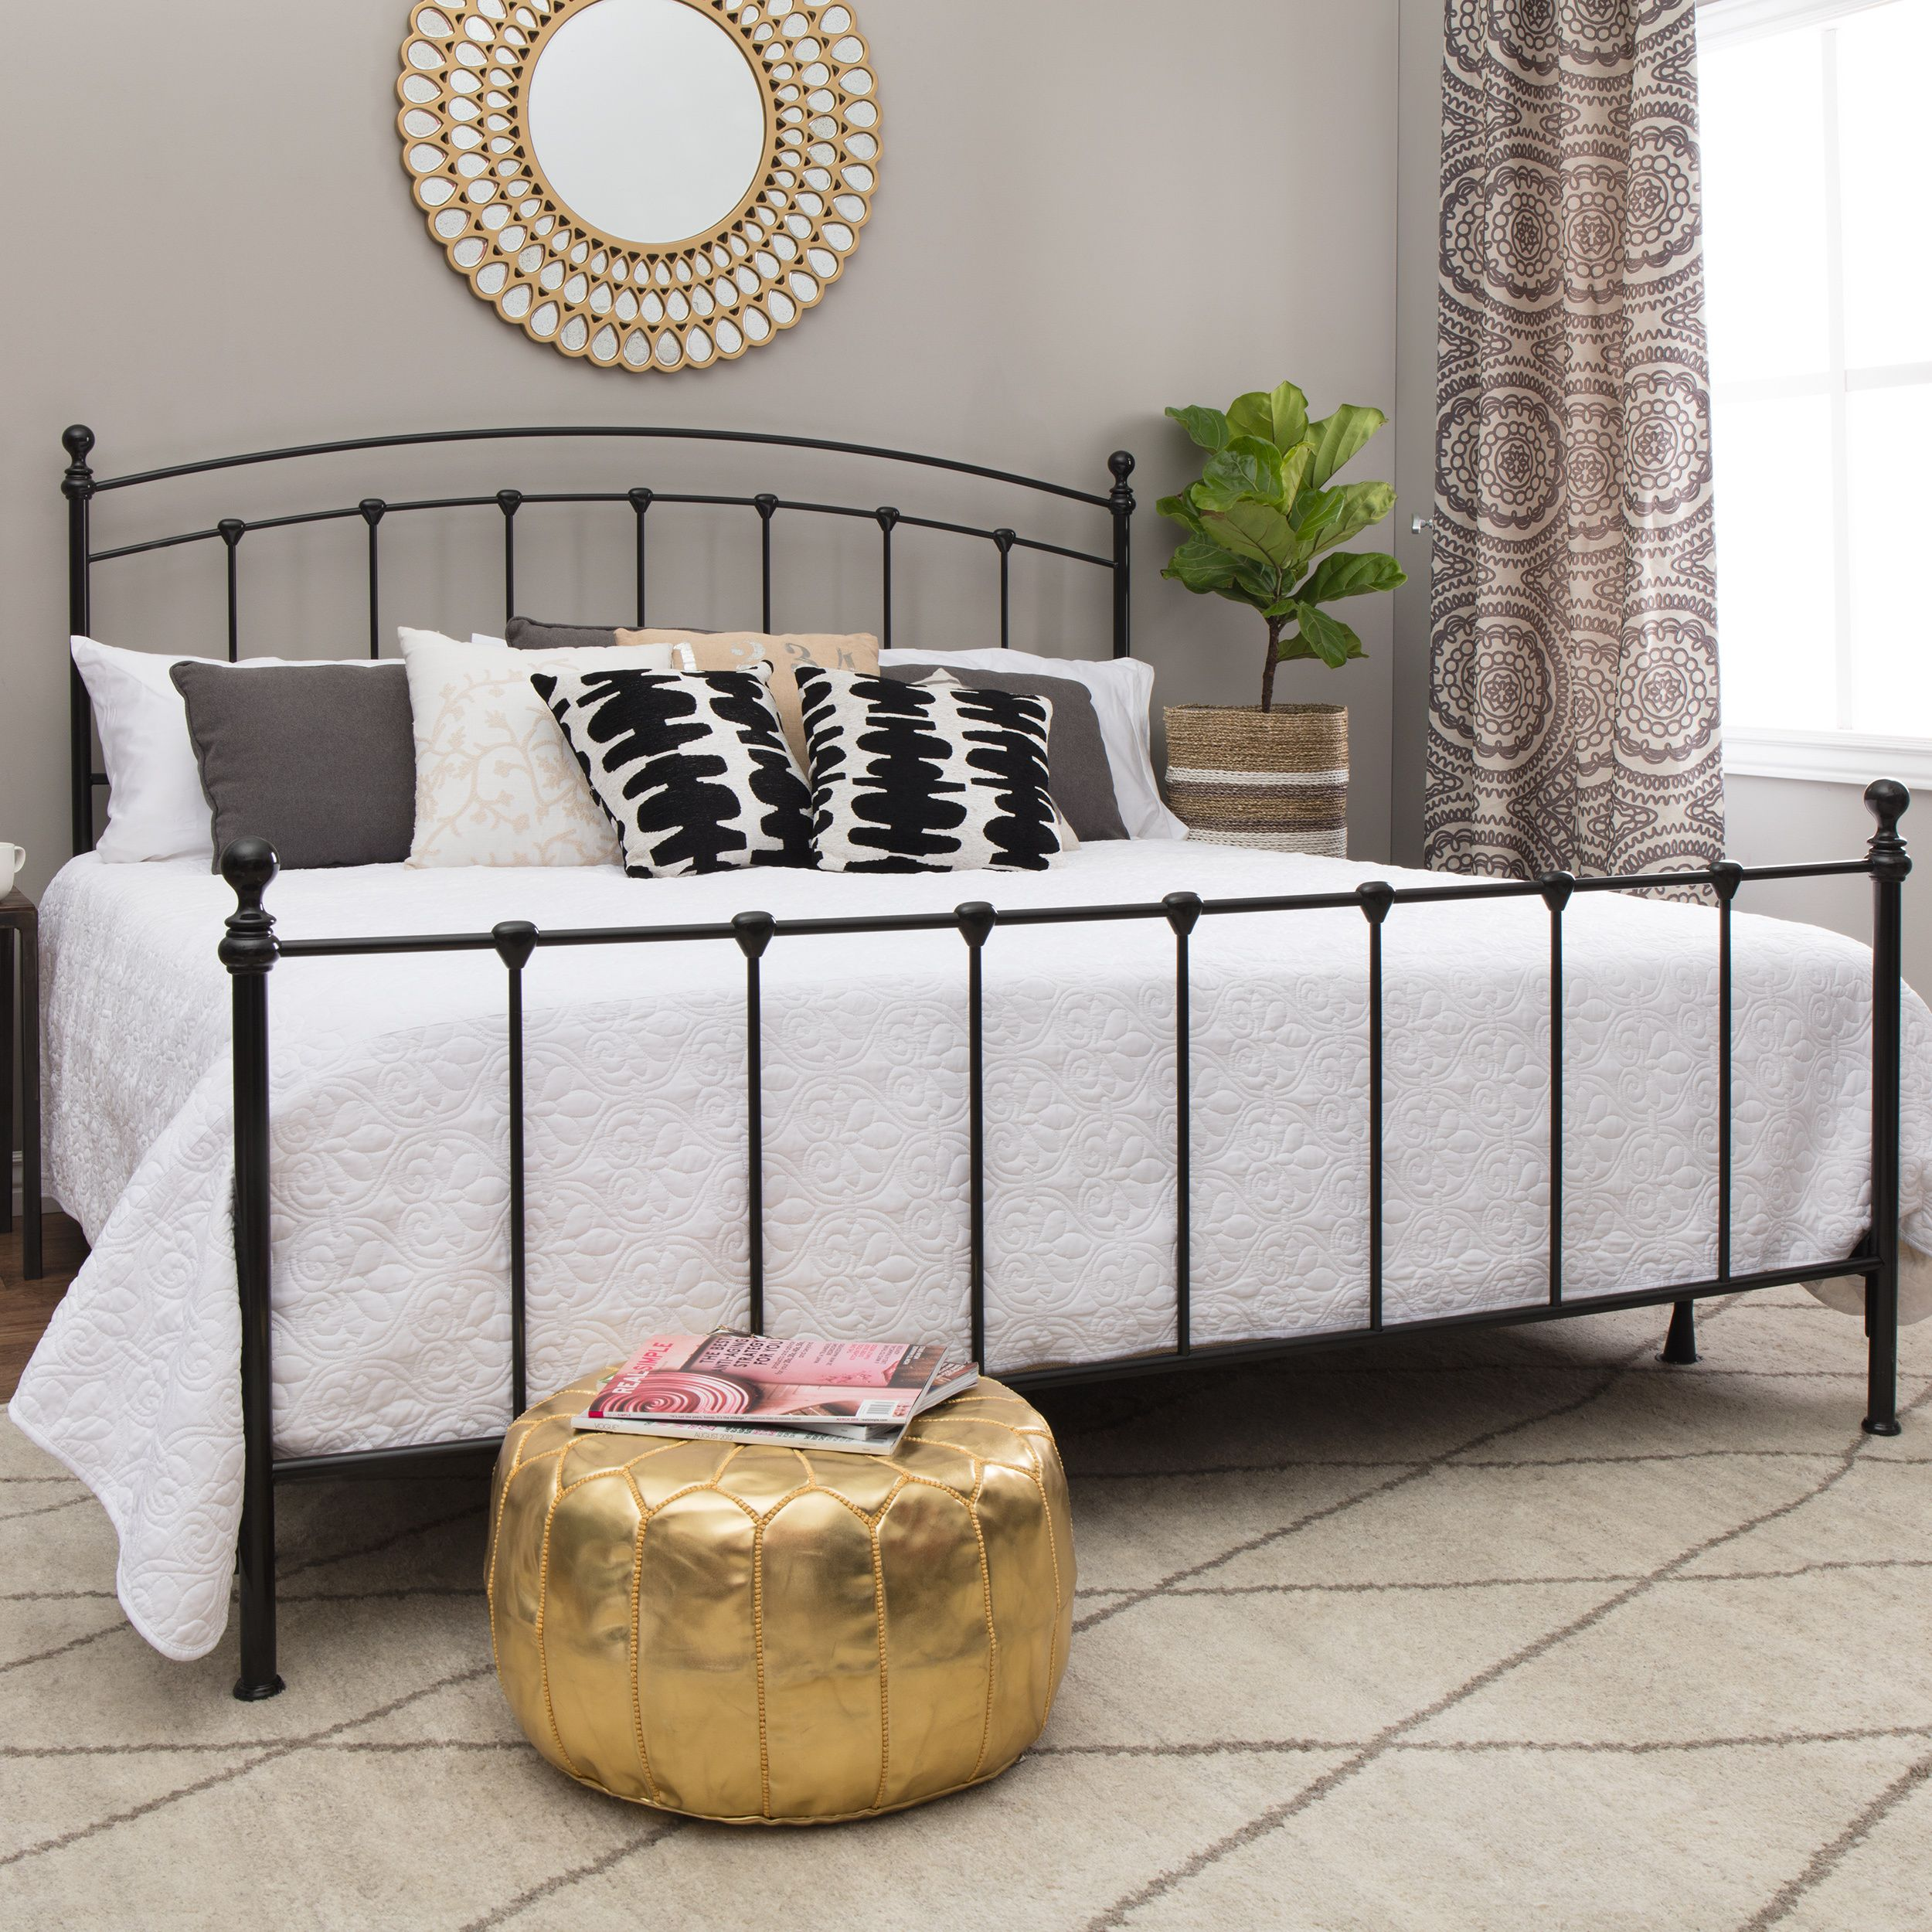 Bedroom Furniture You Ll Love: The Clean, Simple, And Sophisticated Design Of The Kristin